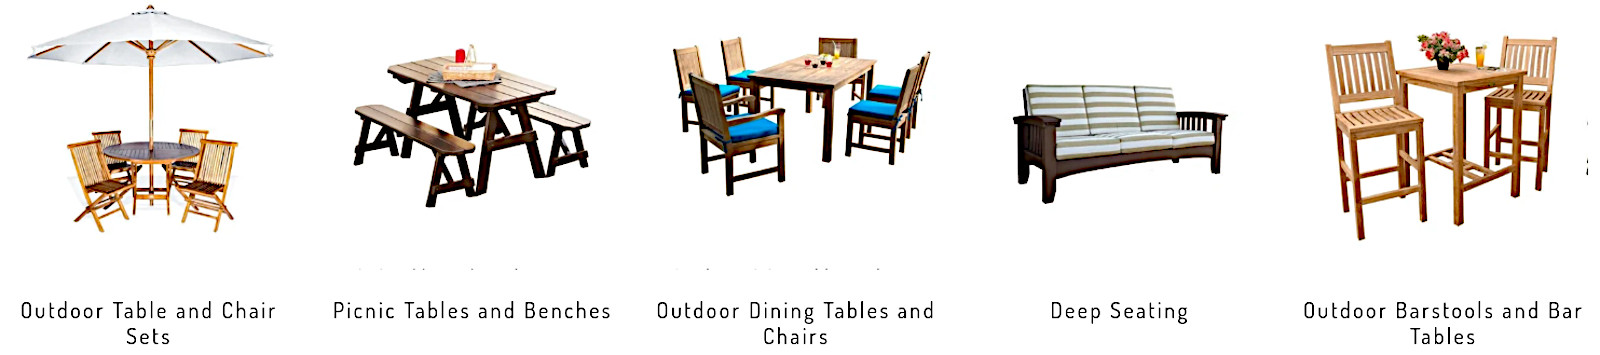 Easy of use tables and chairs